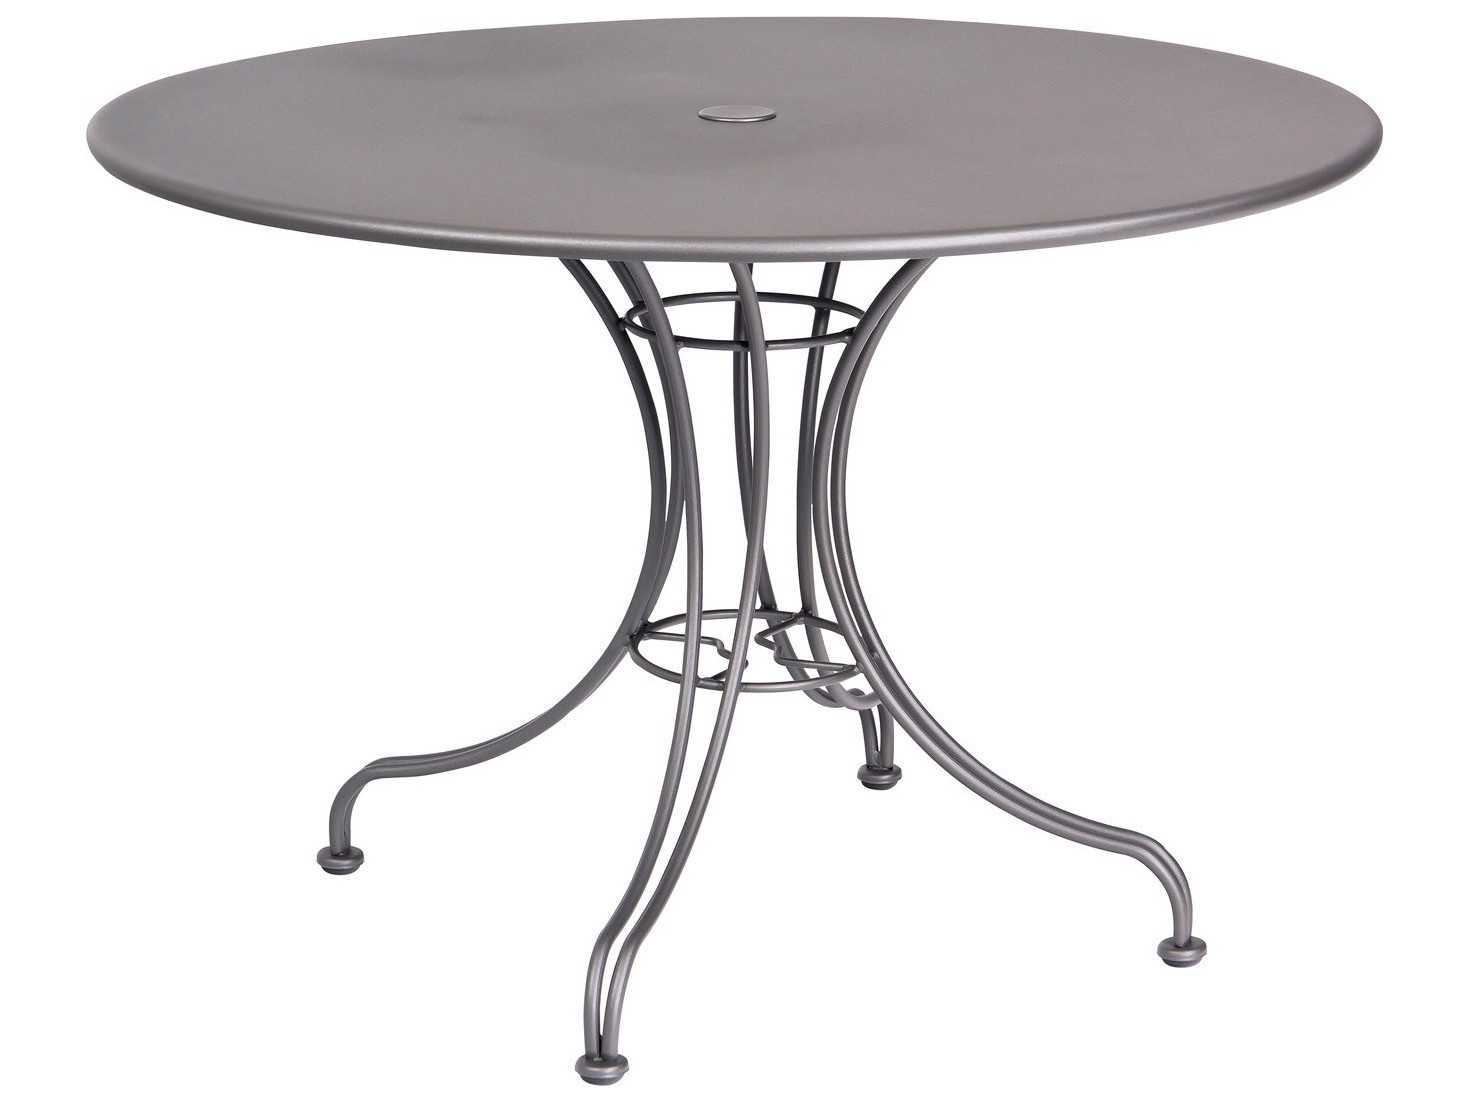 Woodard Wrought Iron 42 Round Dining Table with Umbrella